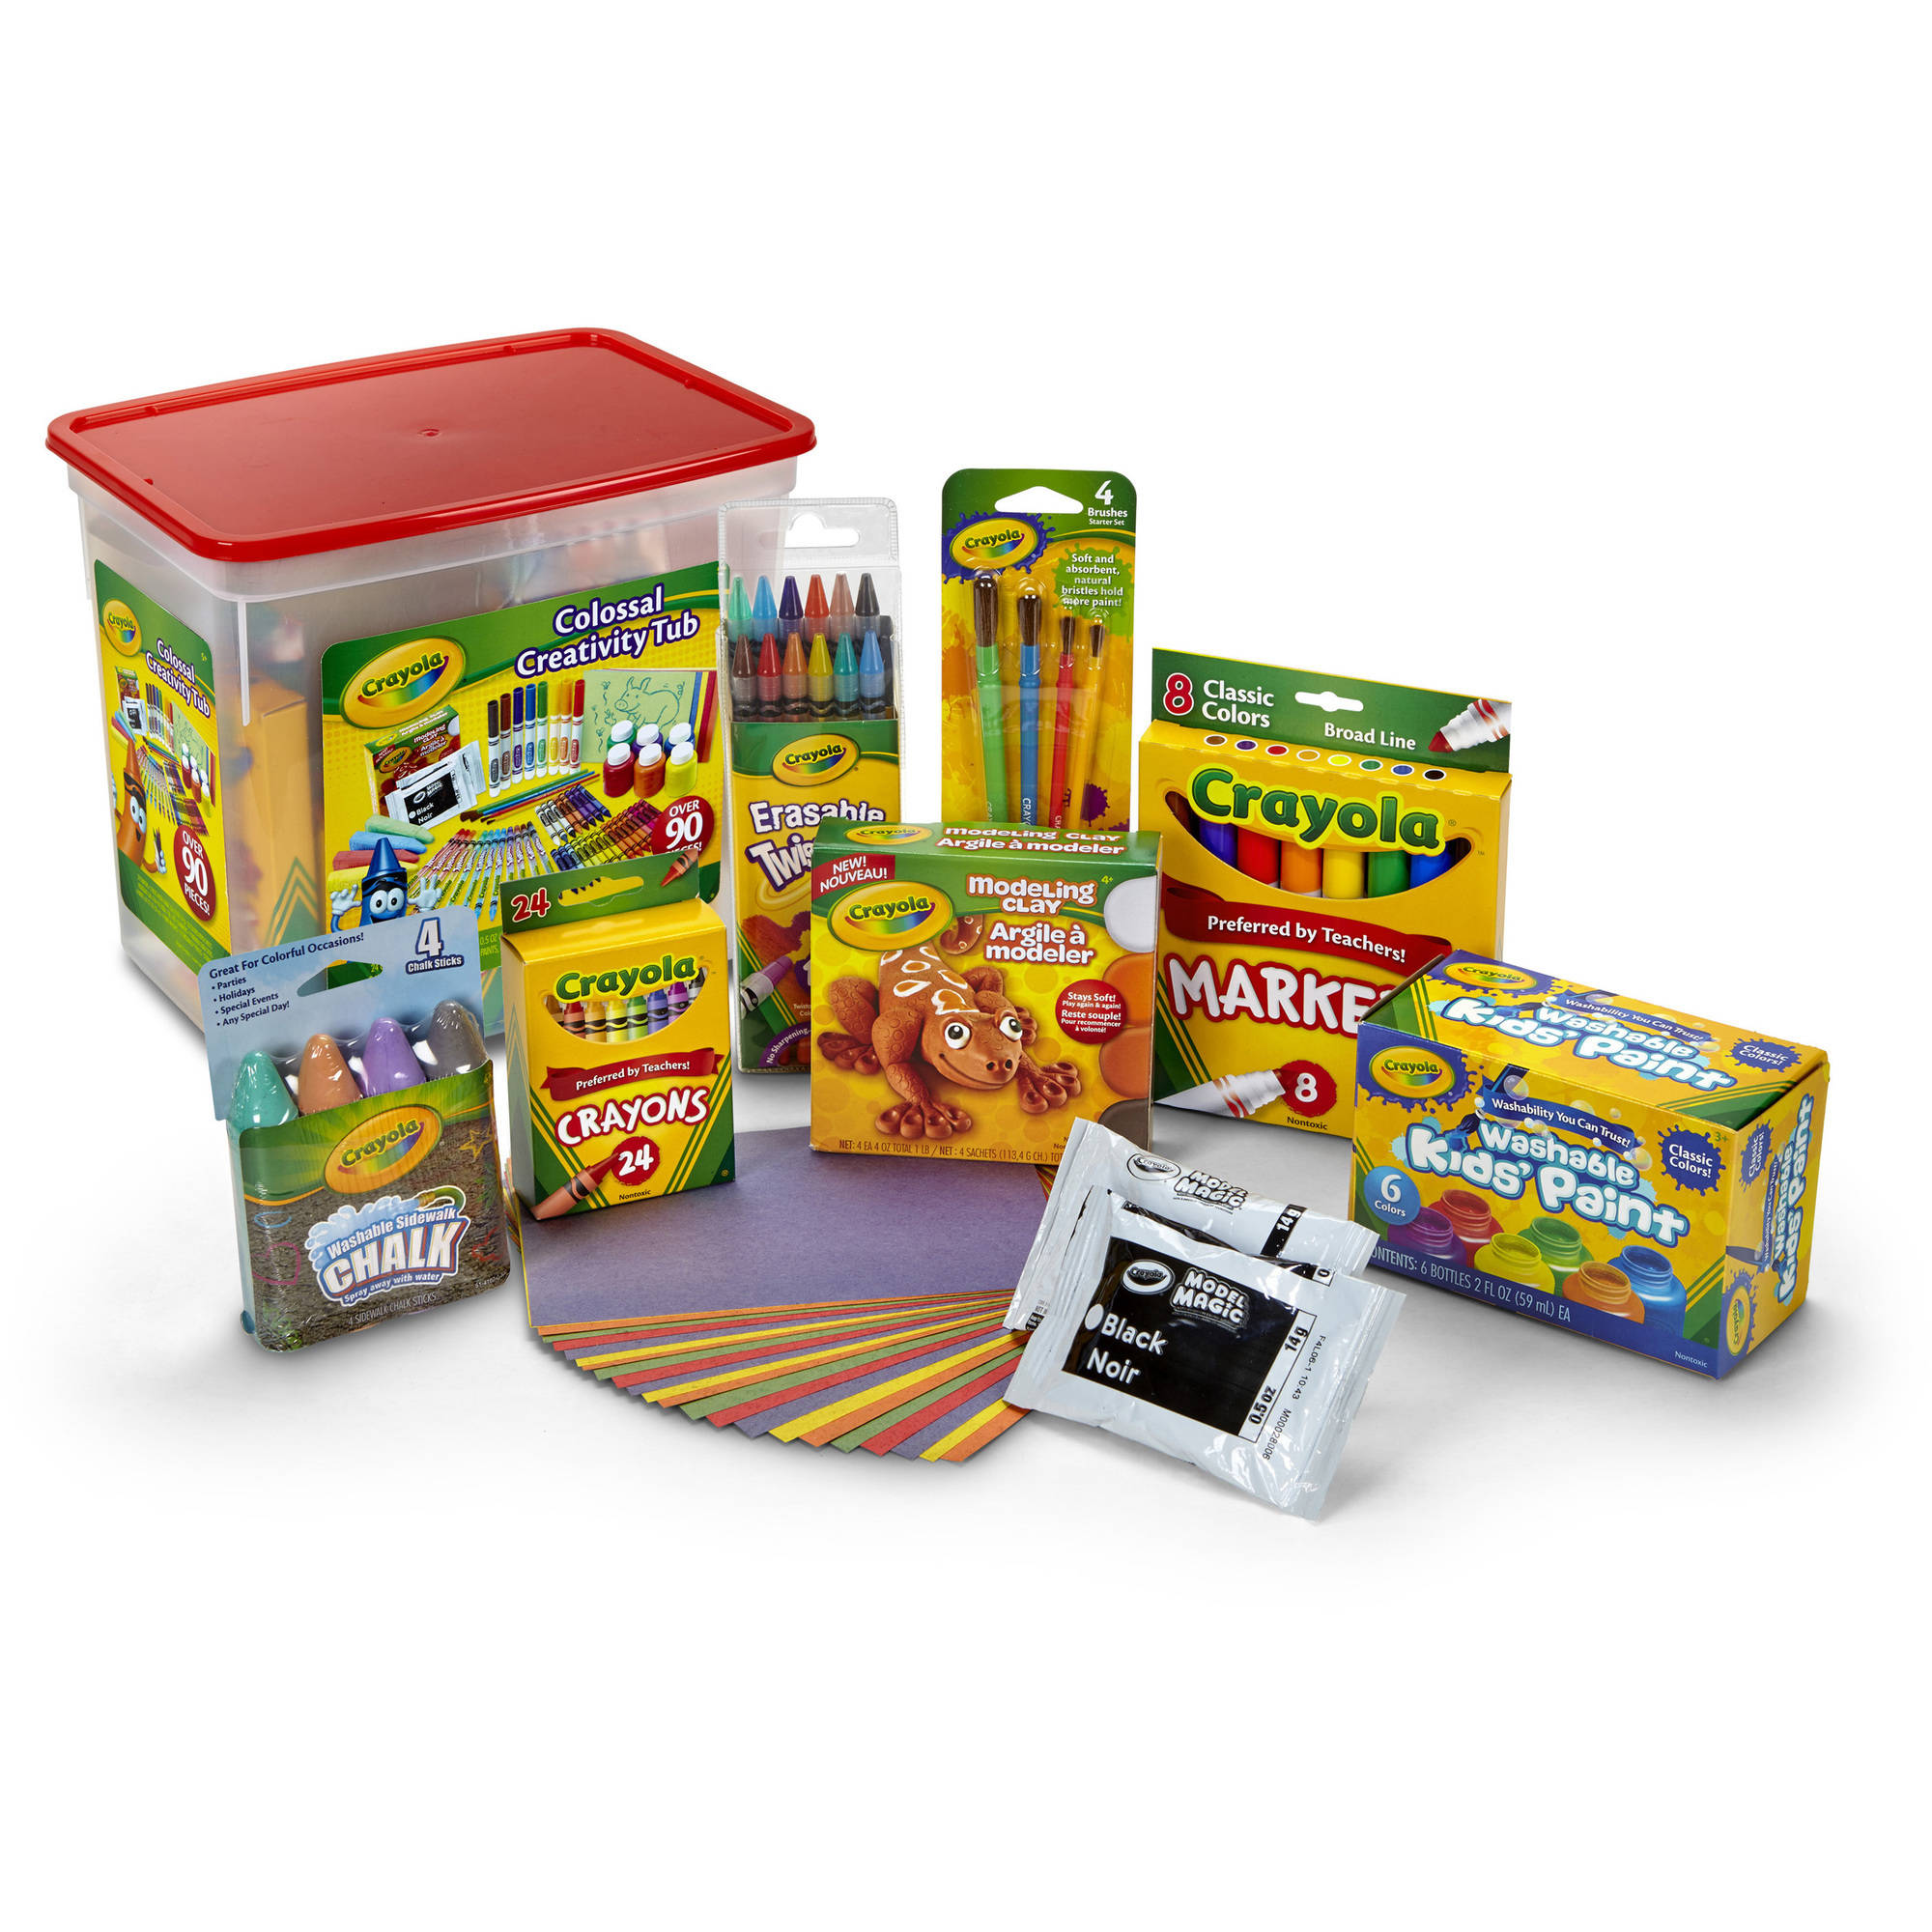 Crayola Colossal Creativity Tub, 90+ Pieces, Art Set, Gifts for Kids